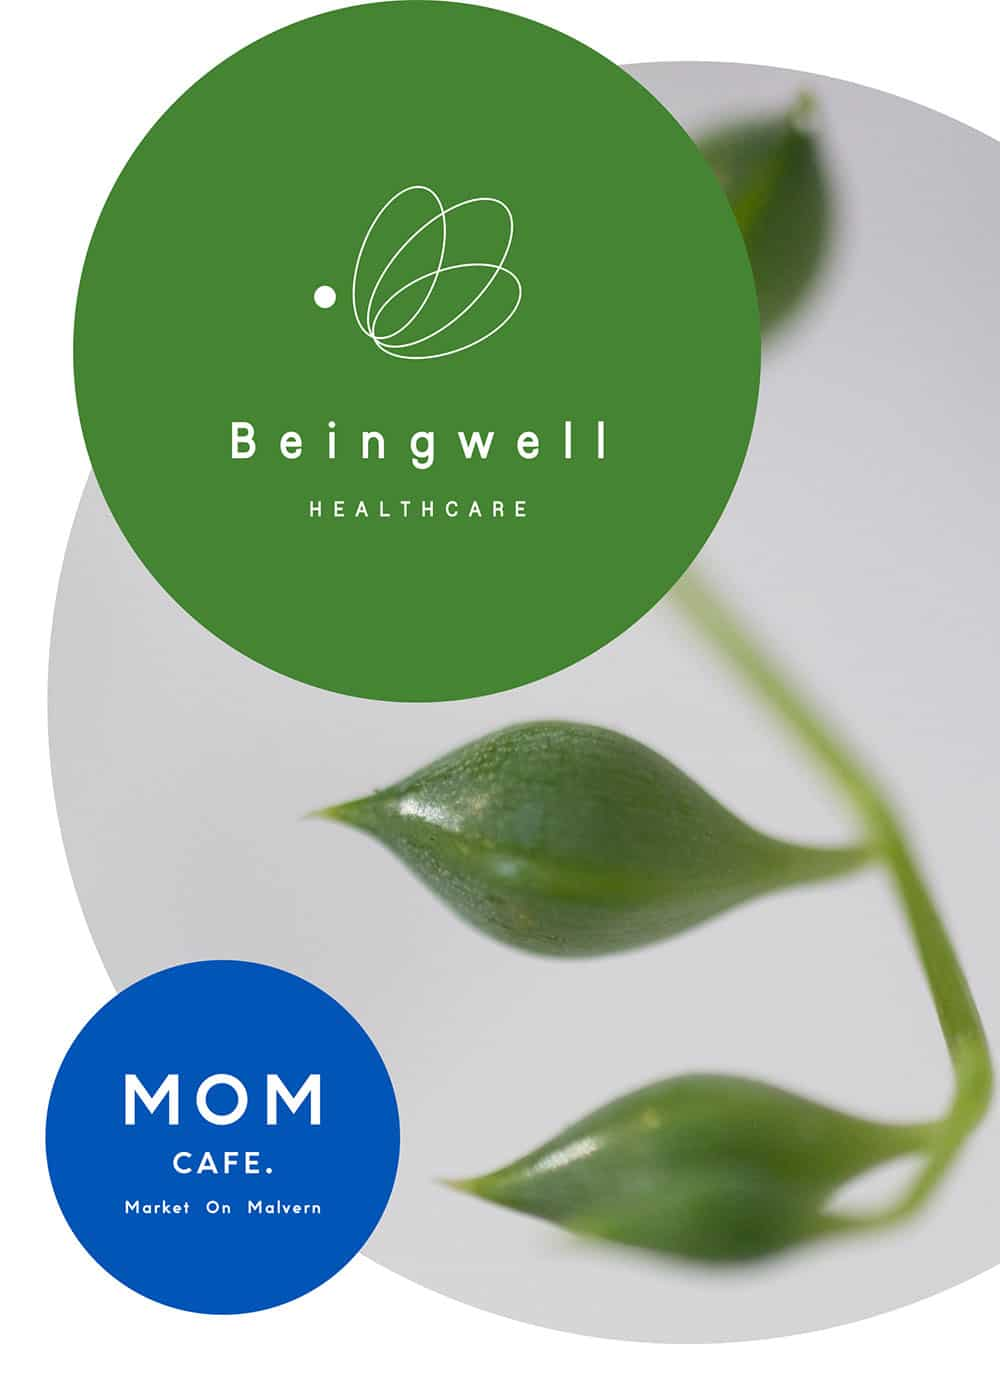 BEINGWELL HEALTHCARE